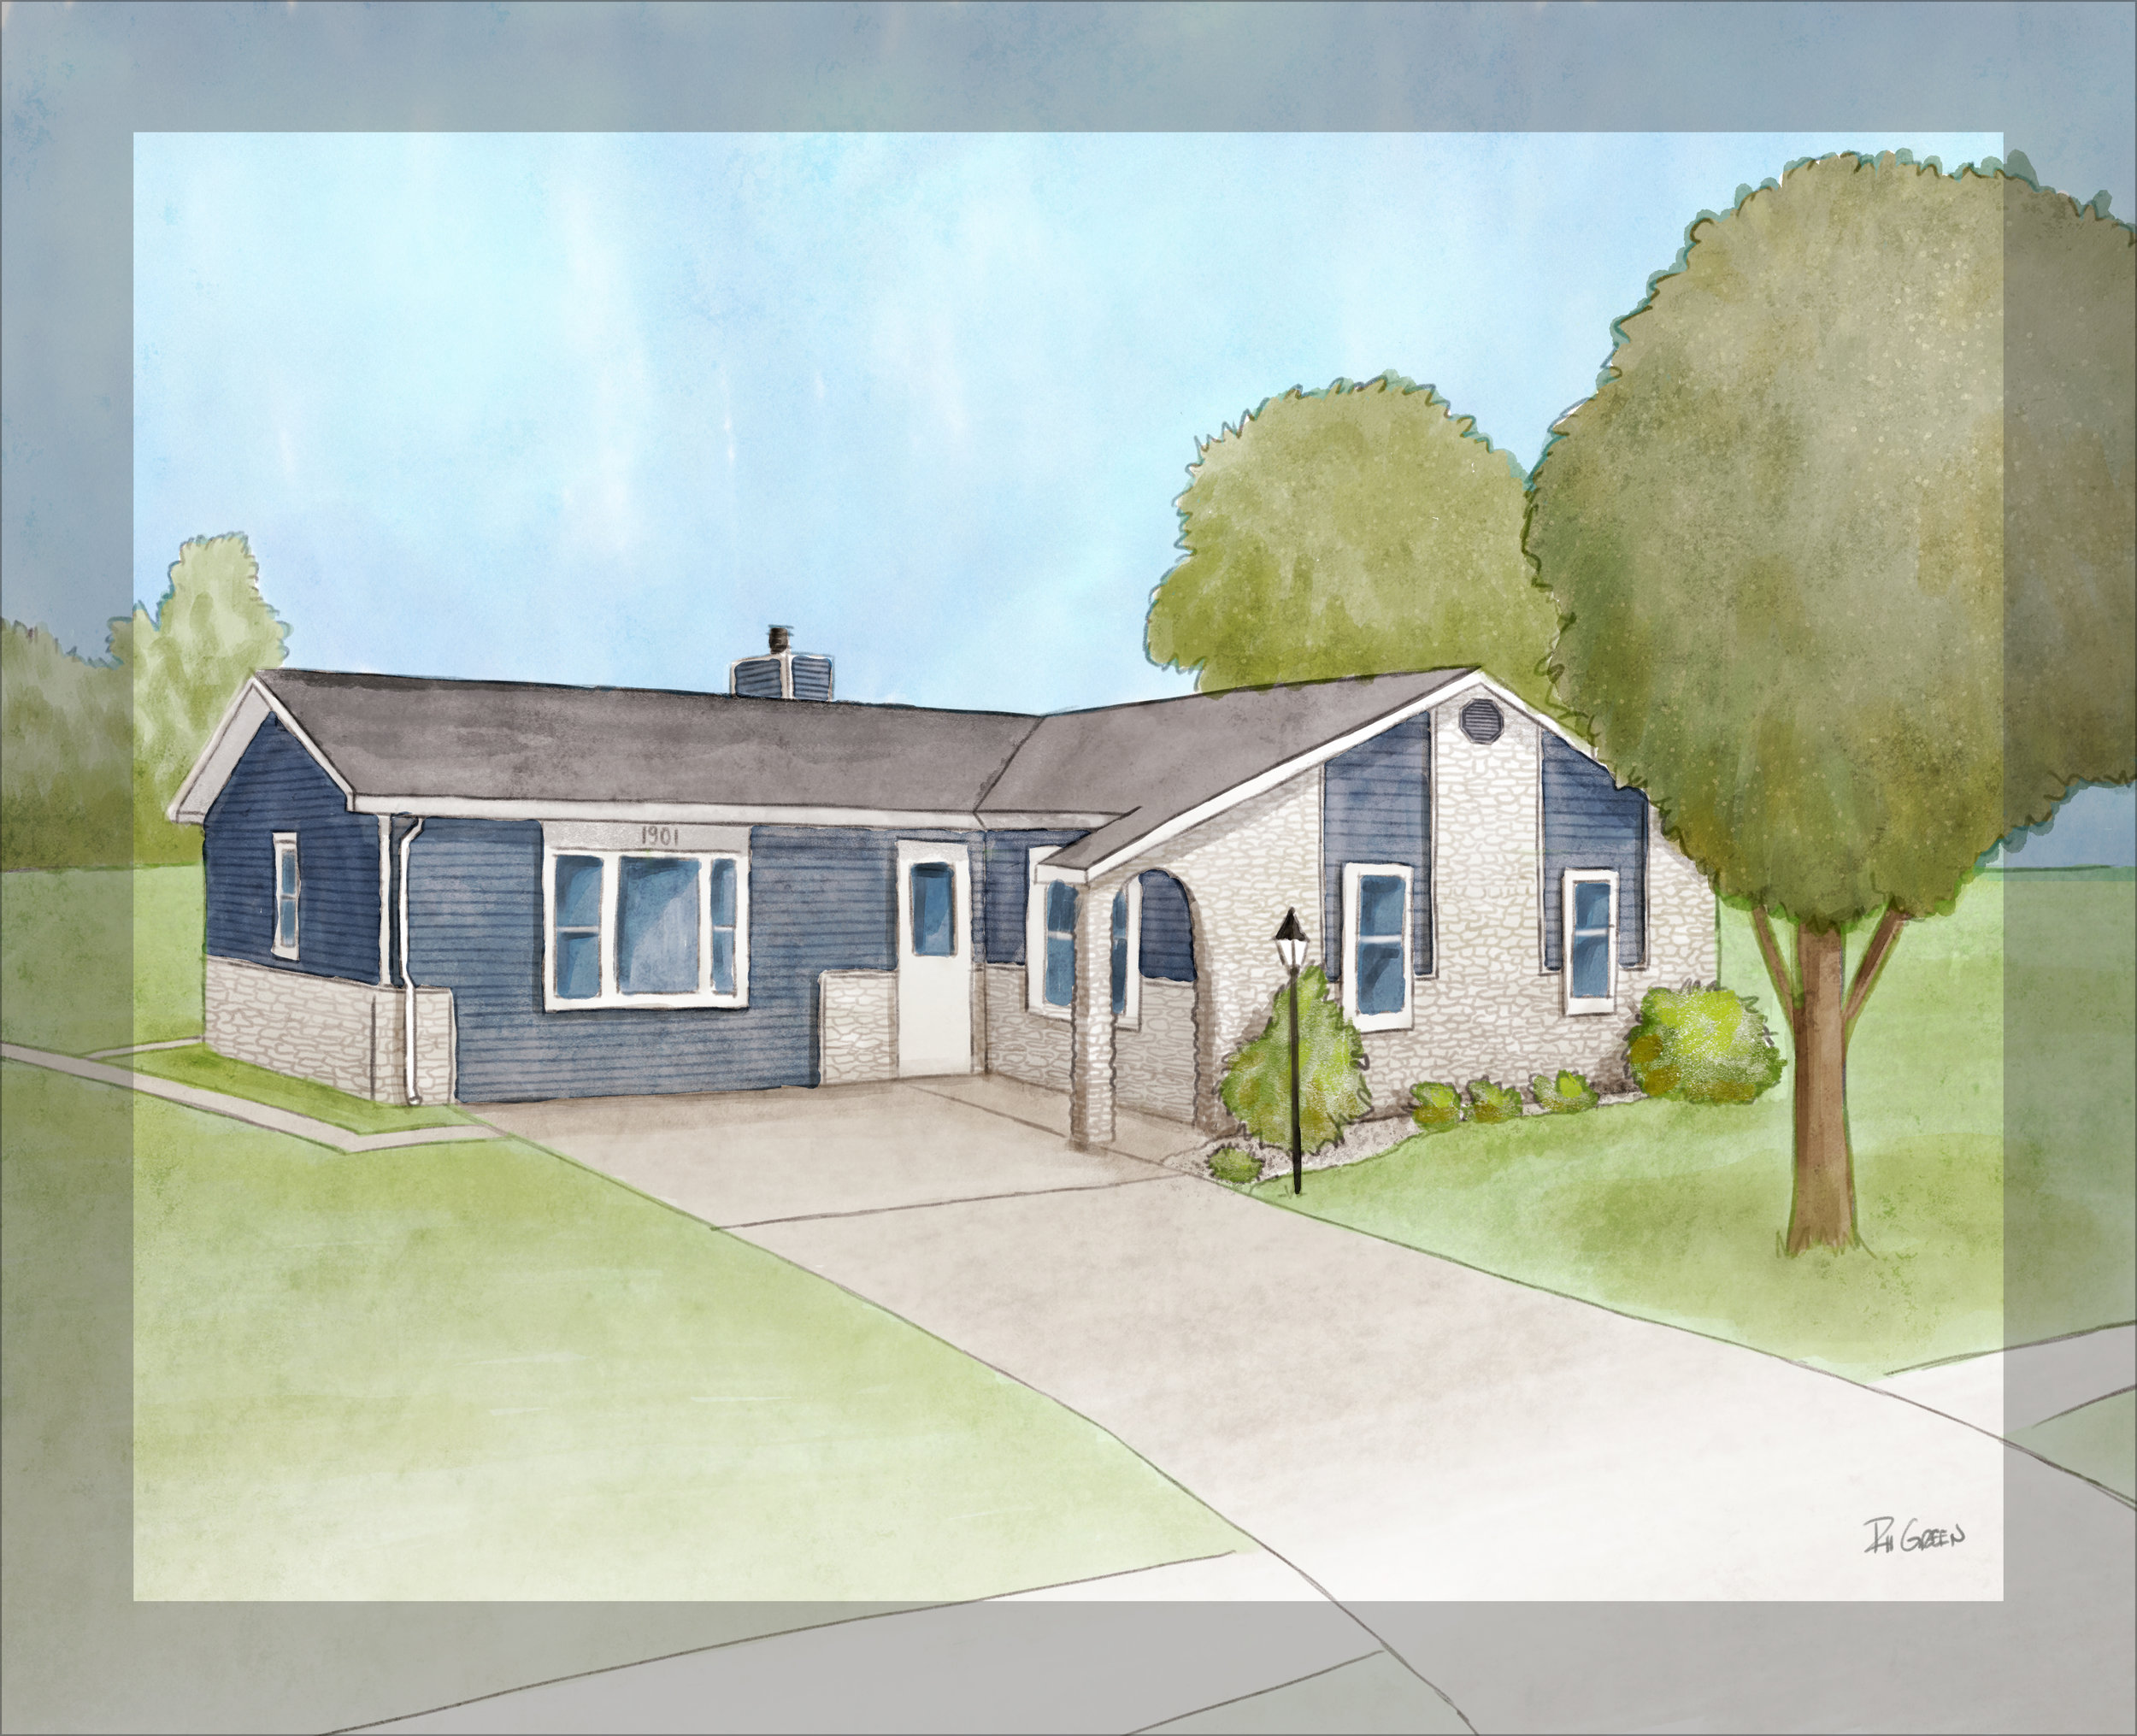 Full color rendering of home, includes modifications made to sketch based on clients feedback